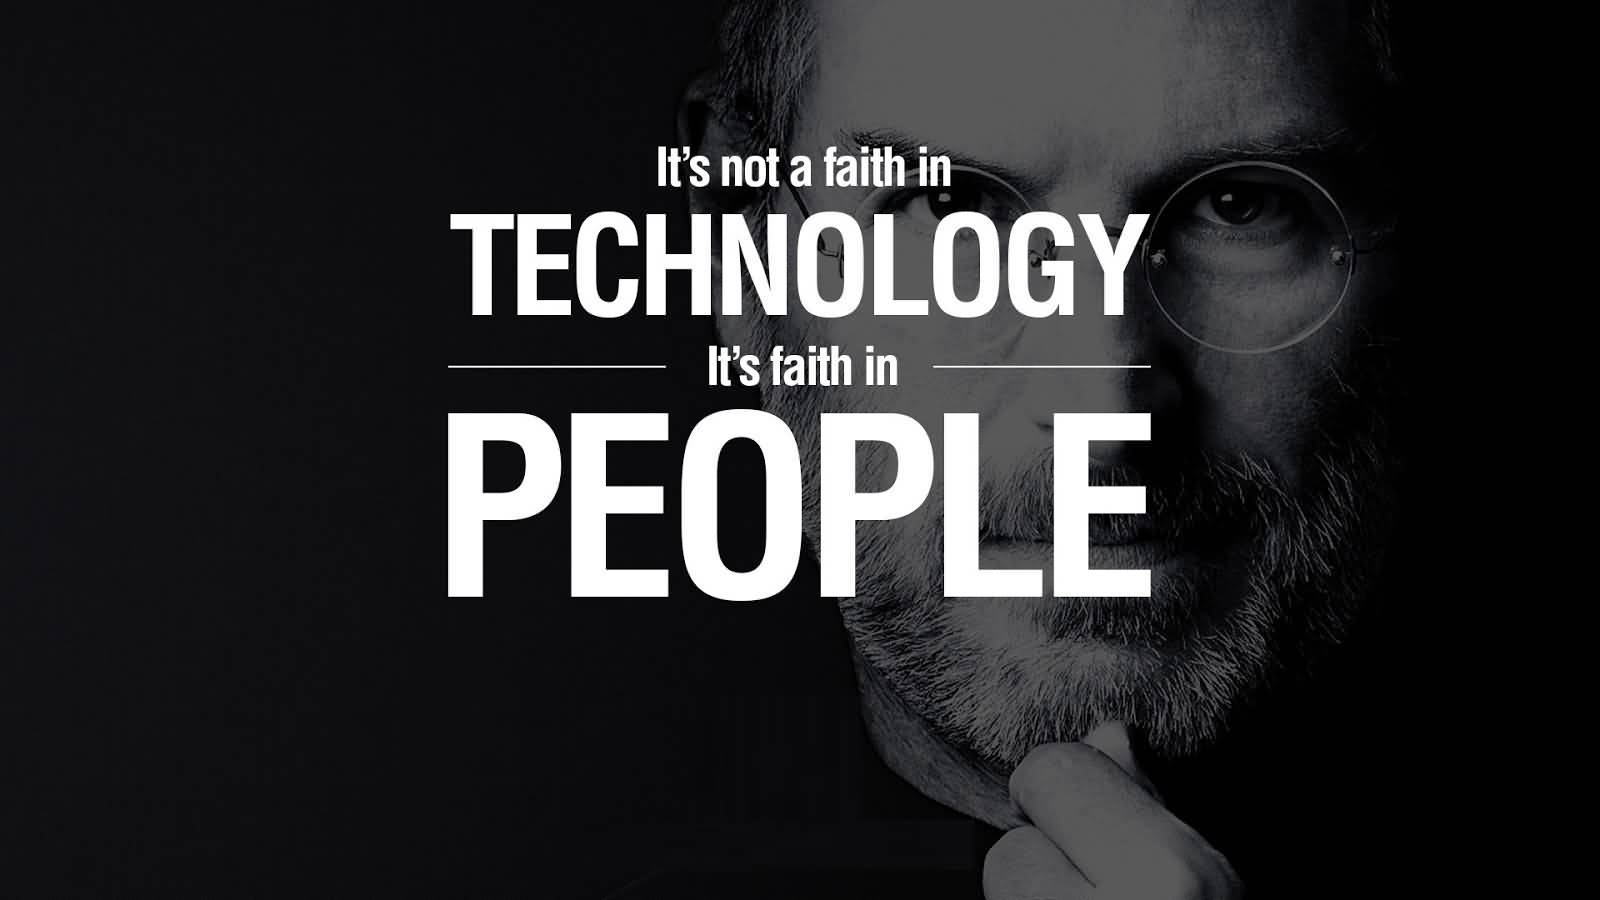 Quotes On Technology Inspiration Top 20 Technology Quotes Tech Quotes Best Technology Status